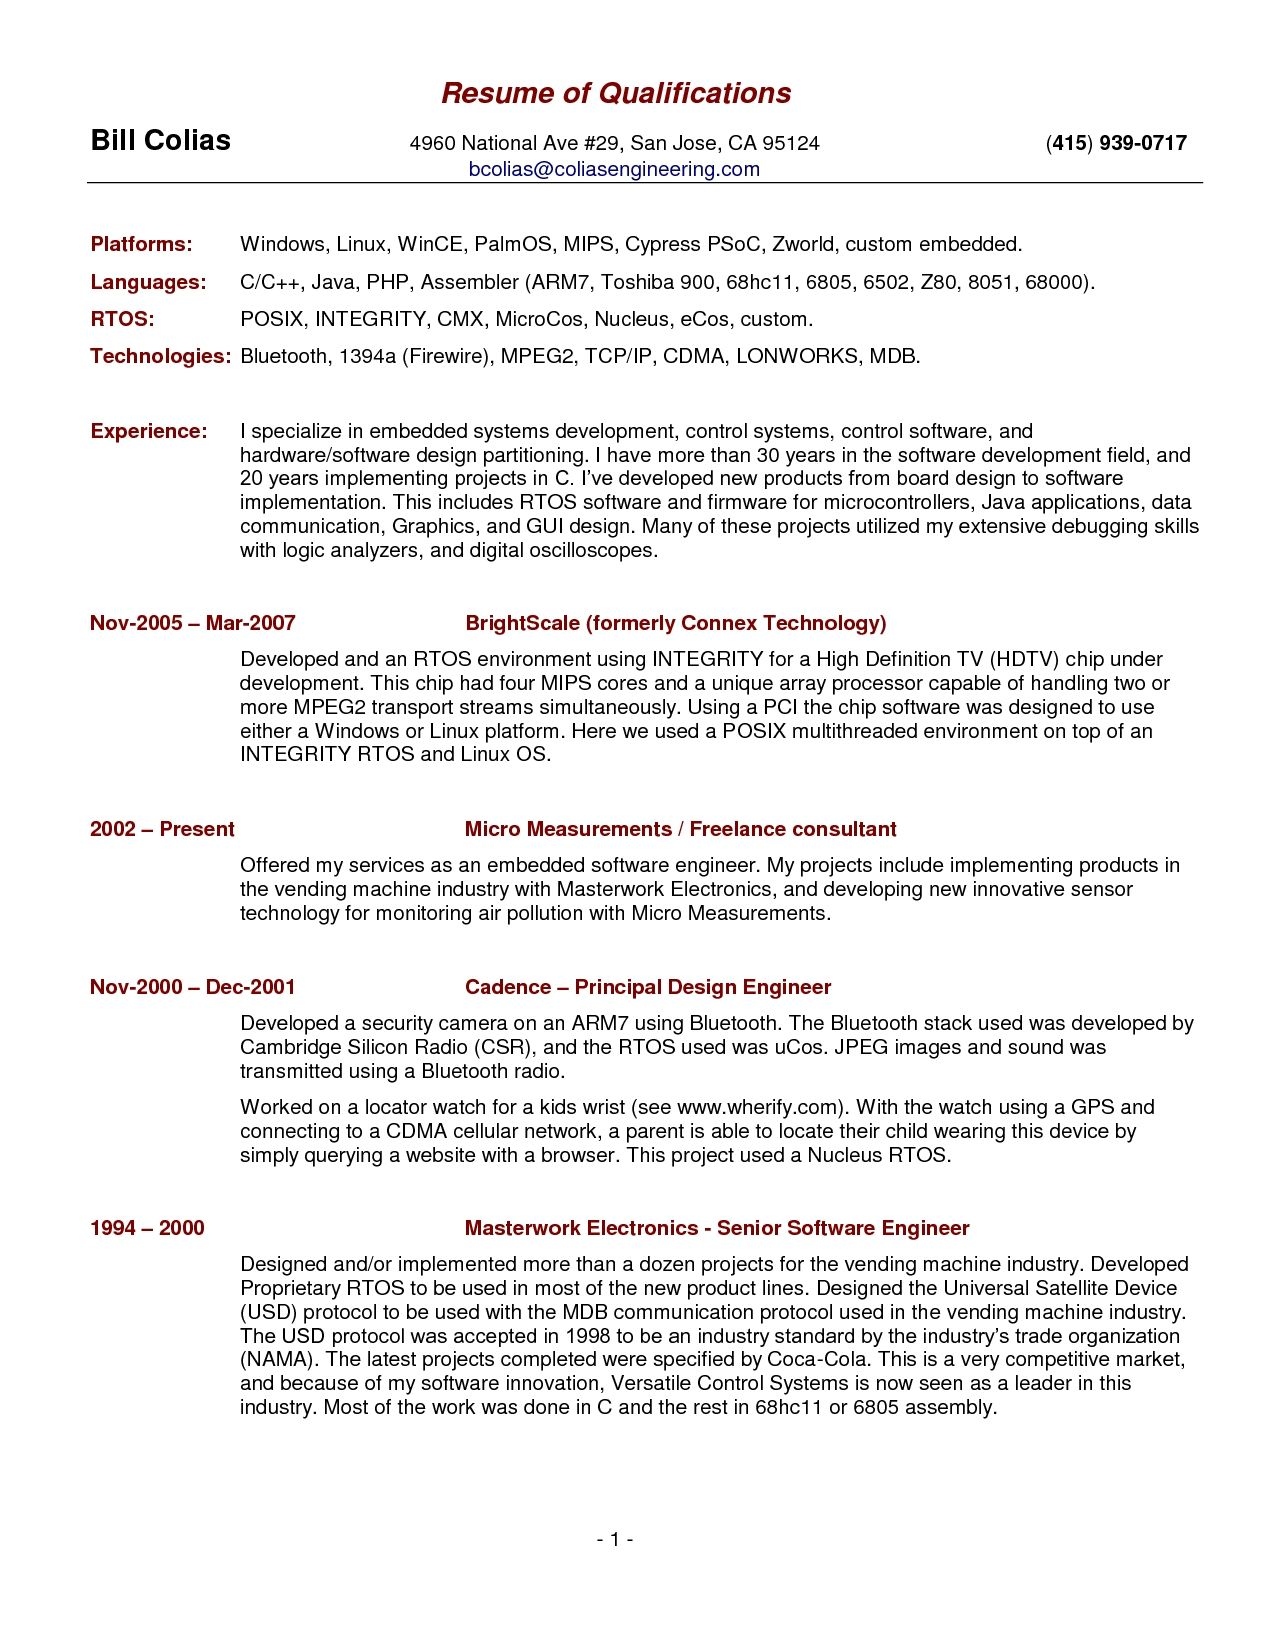 Sample Resume Summary Statement Qualifications For A Resume Examples 7F8Ea3A2A New Resume Skills